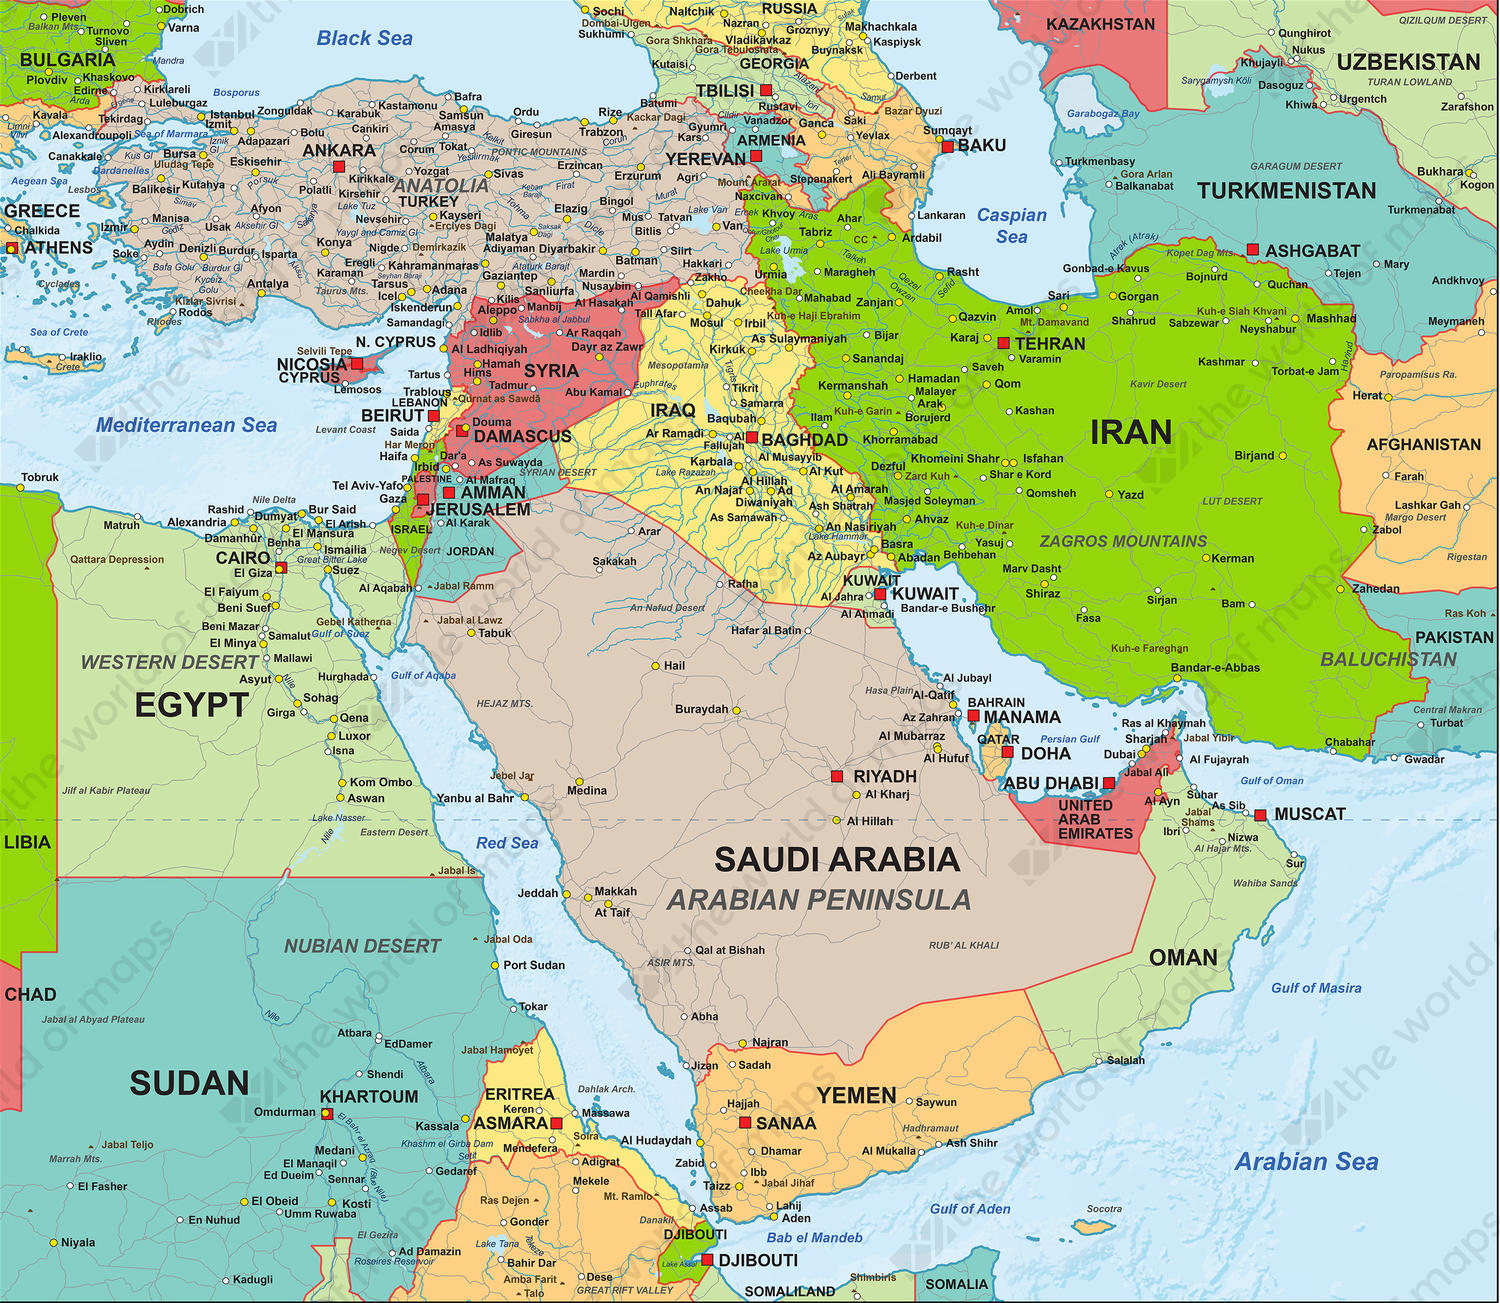 World Map Middle East Digital Map Middle East Political 1307 | The World of Maps.com